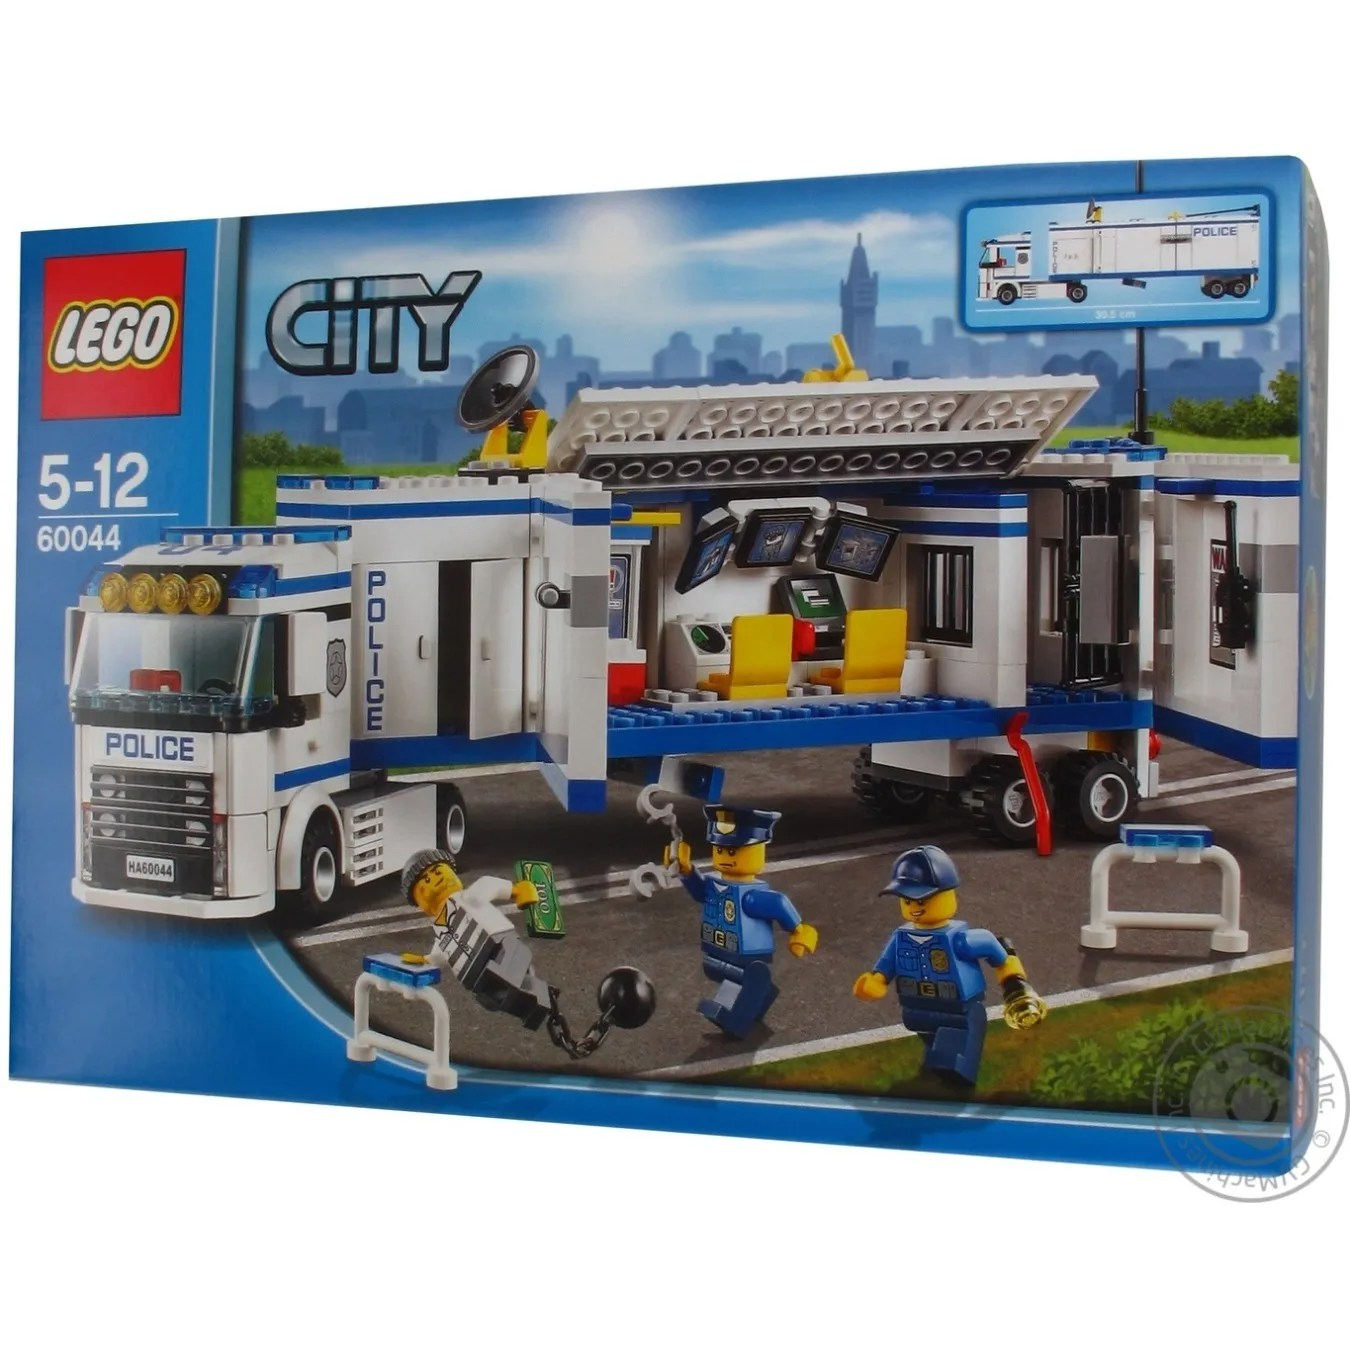 Construction toy Lego City Police Mobile Police Unit for 5 to 12     Construction toy Lego City Police Mobile Police Unit for 5 to 12 years  children 375 pieces